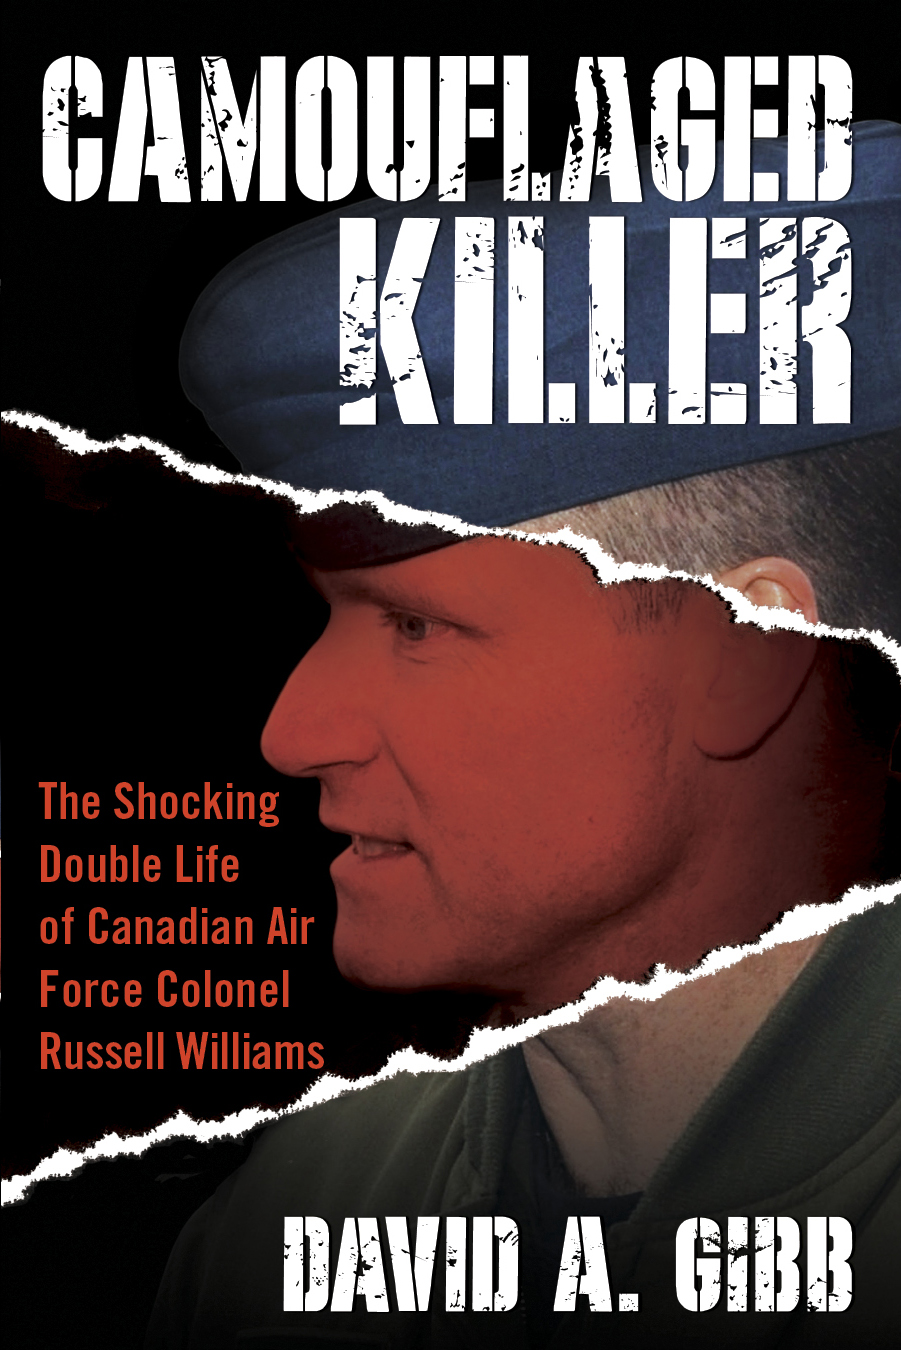 David A. Gibbs book, Camouflaged Killer: The Shocking Double Life of Canadian Air Force Colonel Russell Williams.